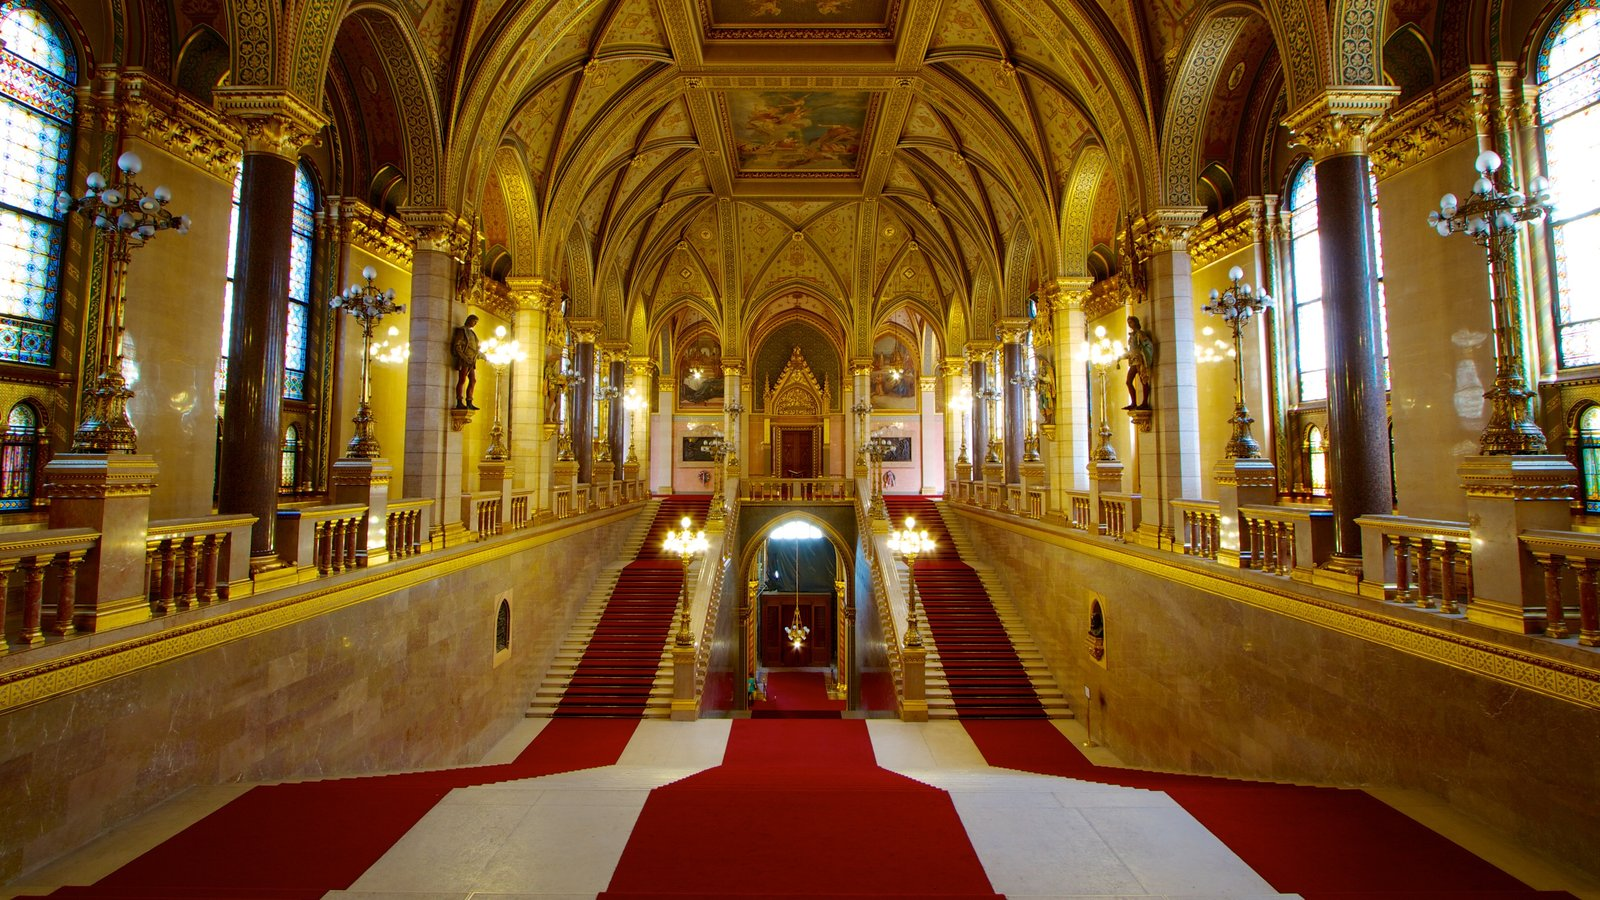 Parliament Building showing heritage architecture, an administrative building and interior views